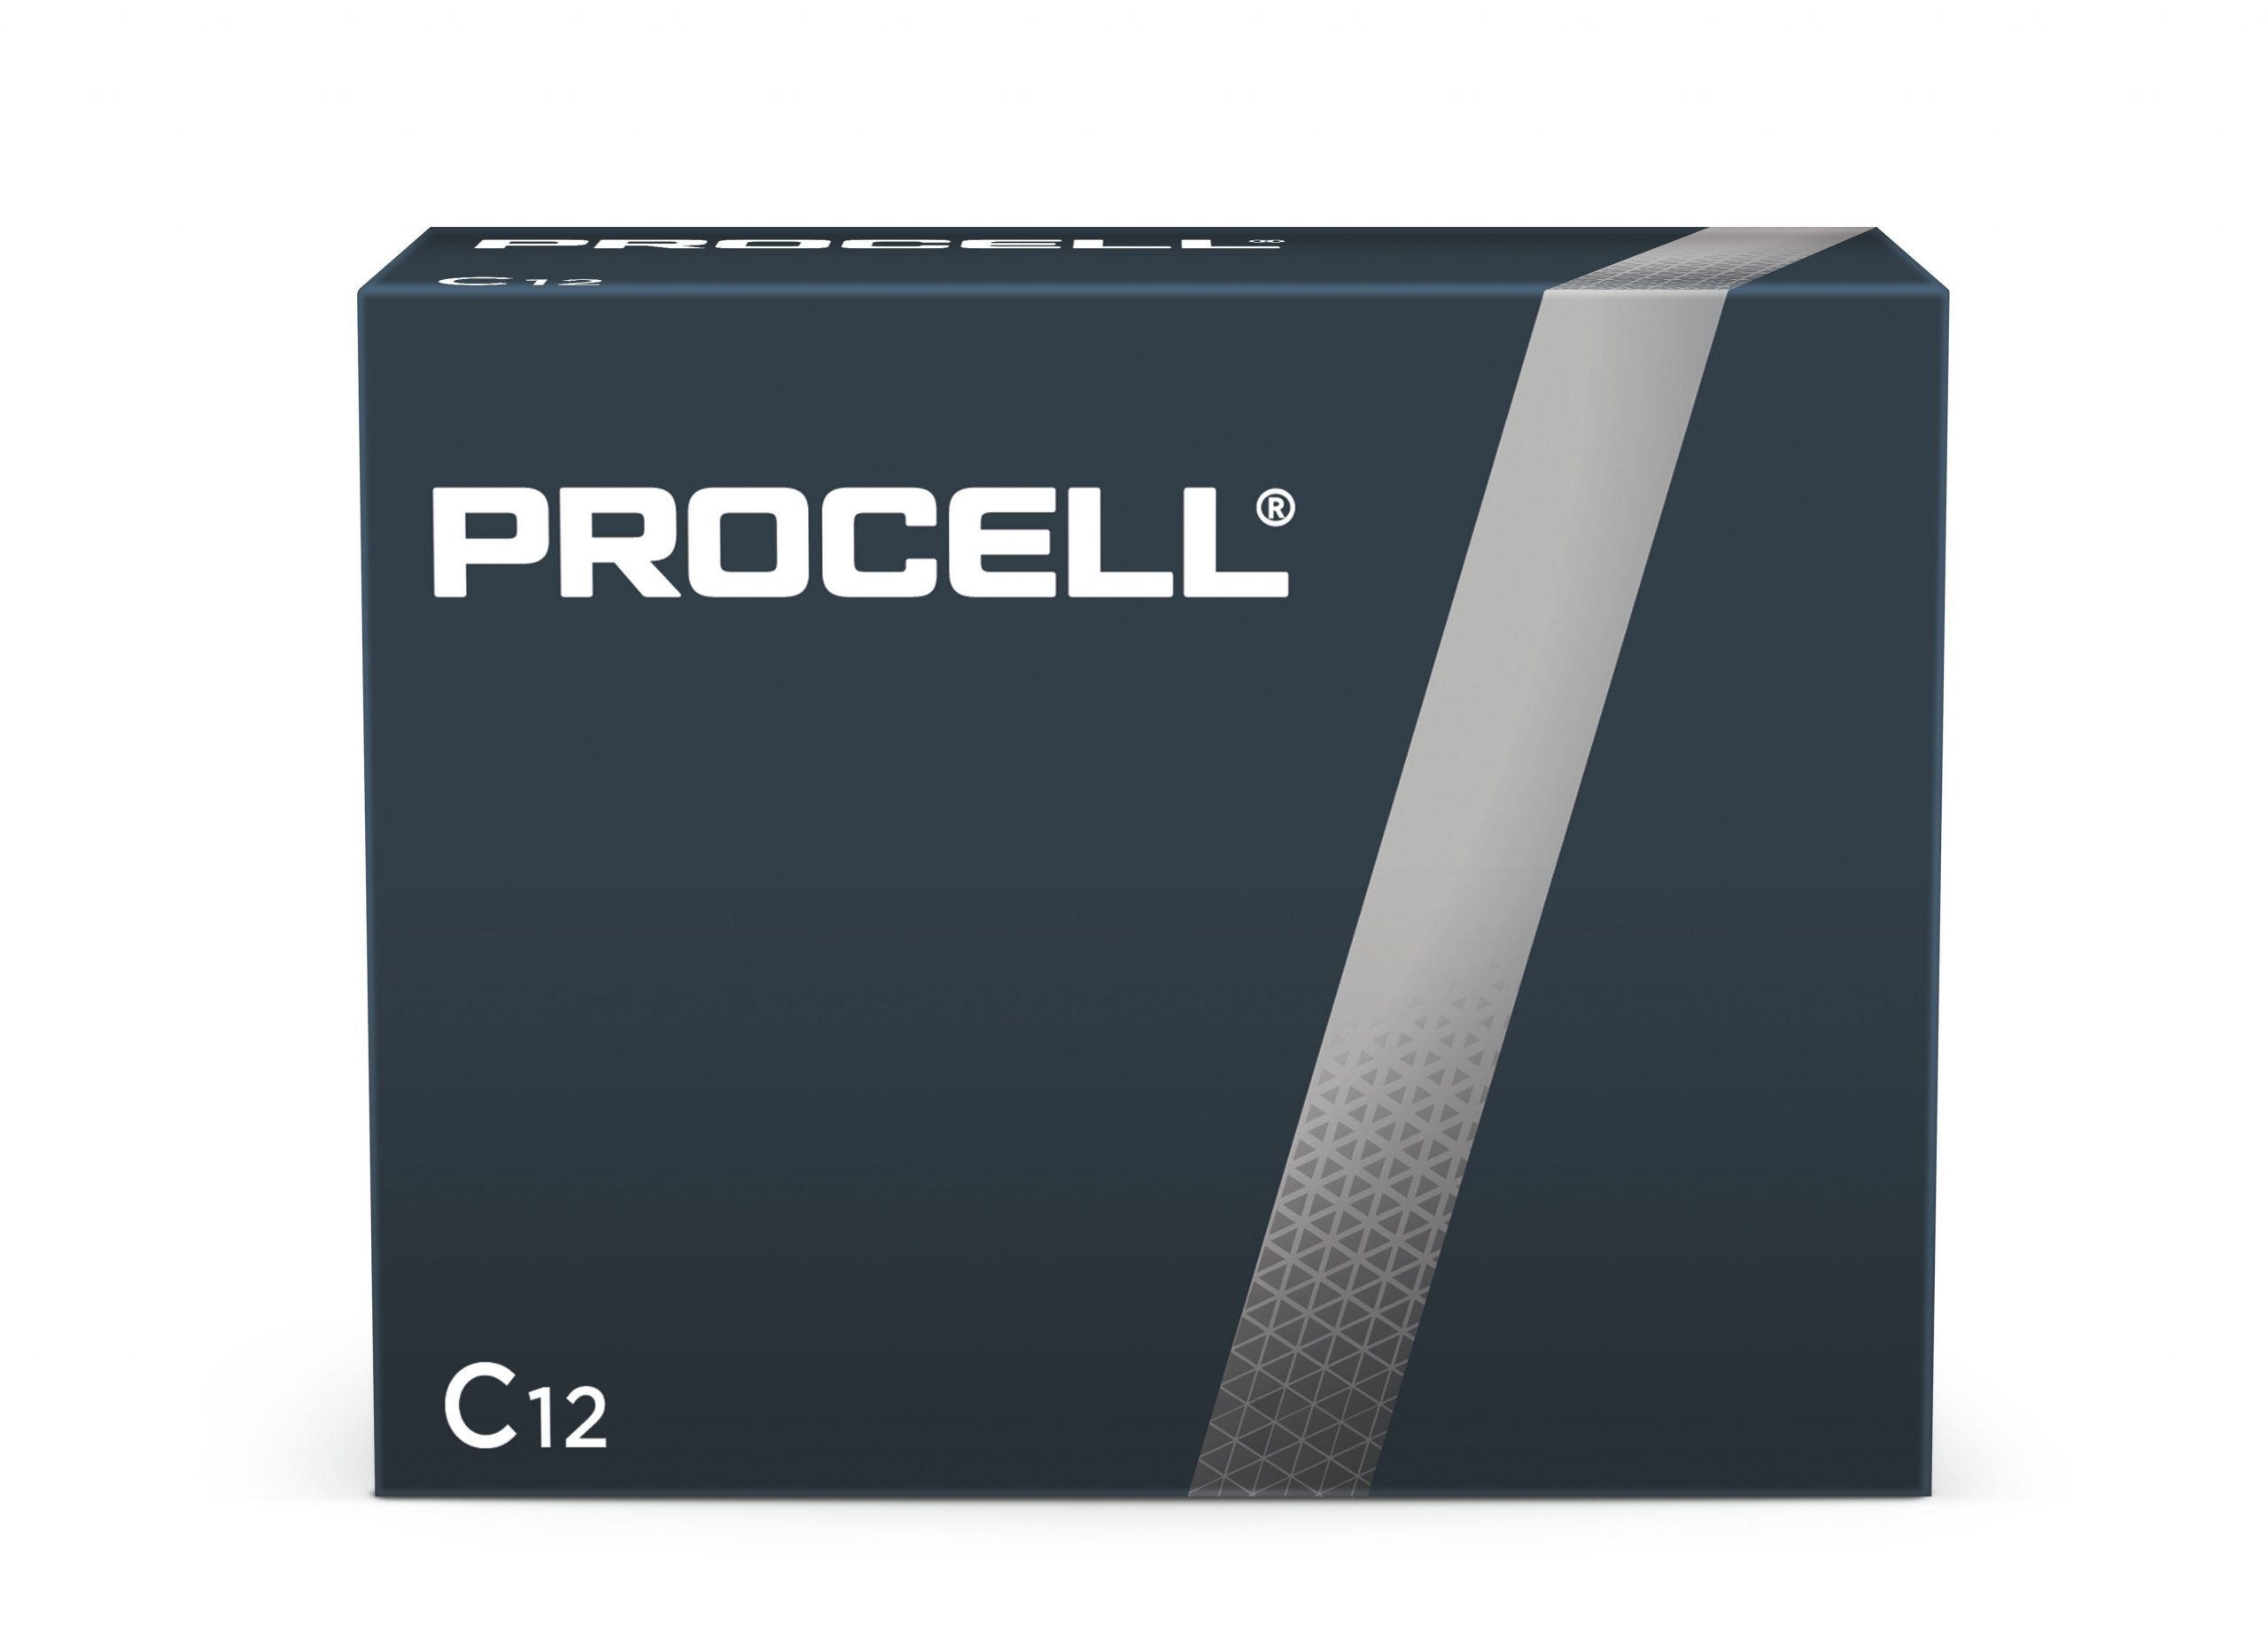 Procell_C12_Box_Front